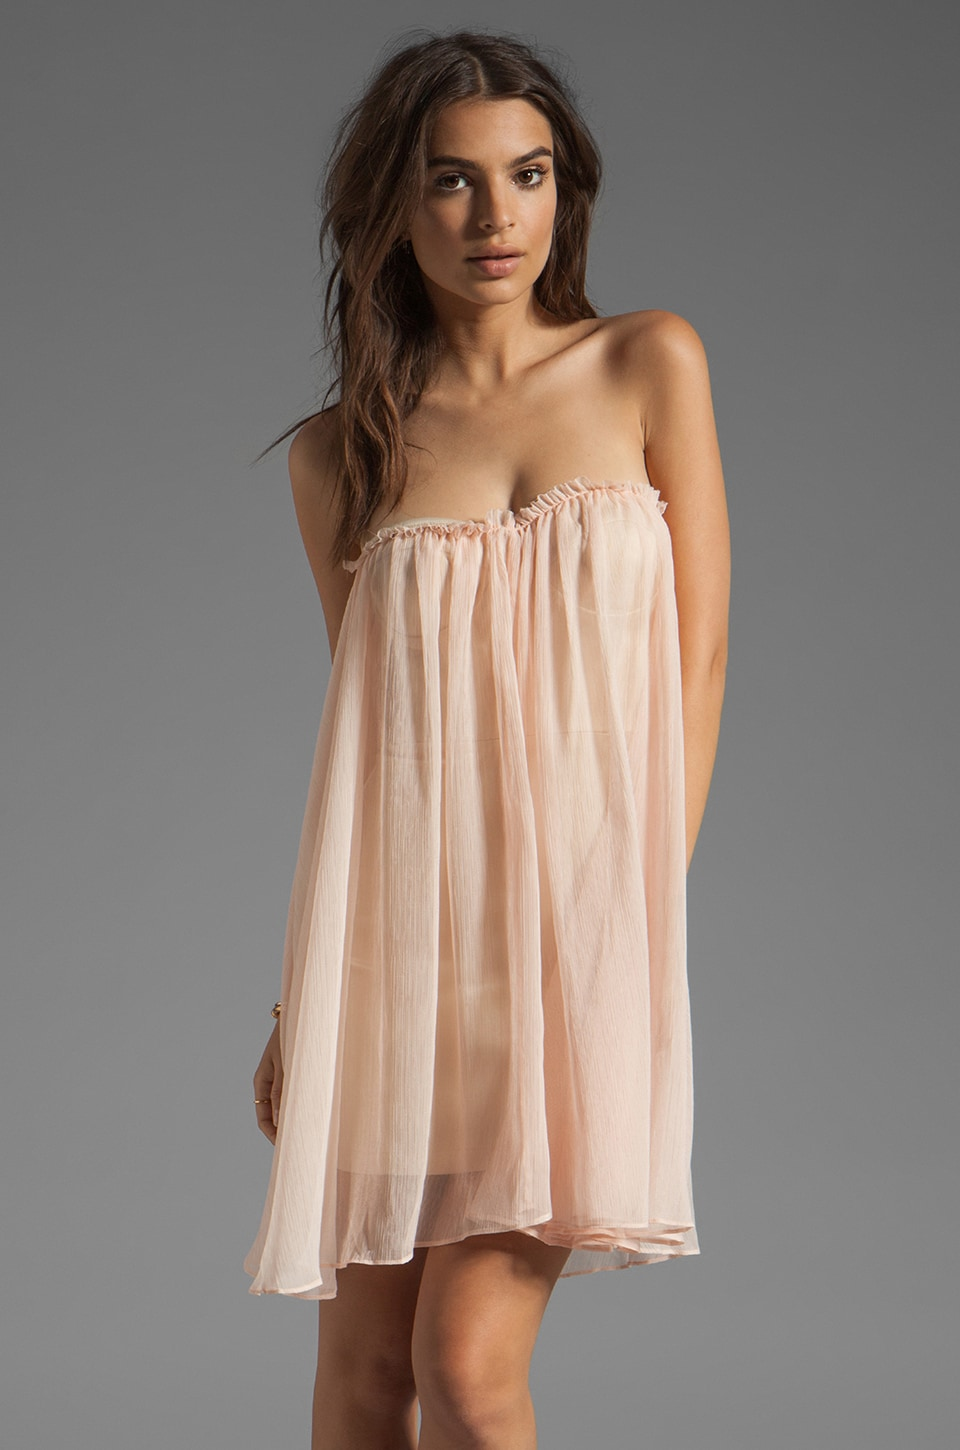 BLAQUE LABEL Strapless Mini Dress in Light Pink